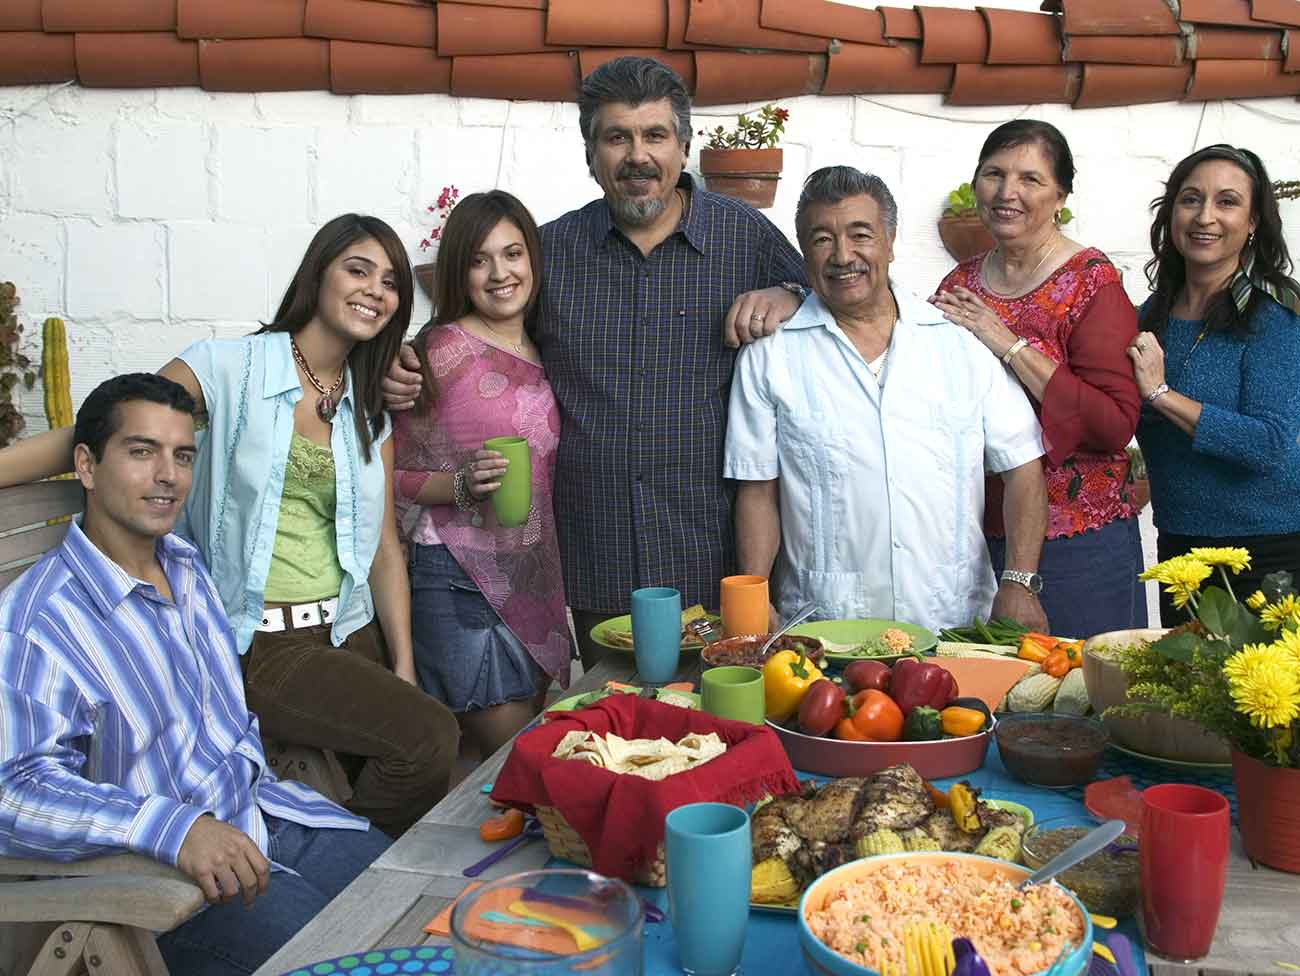 A large, happy Hispanic family smiling at the camera.